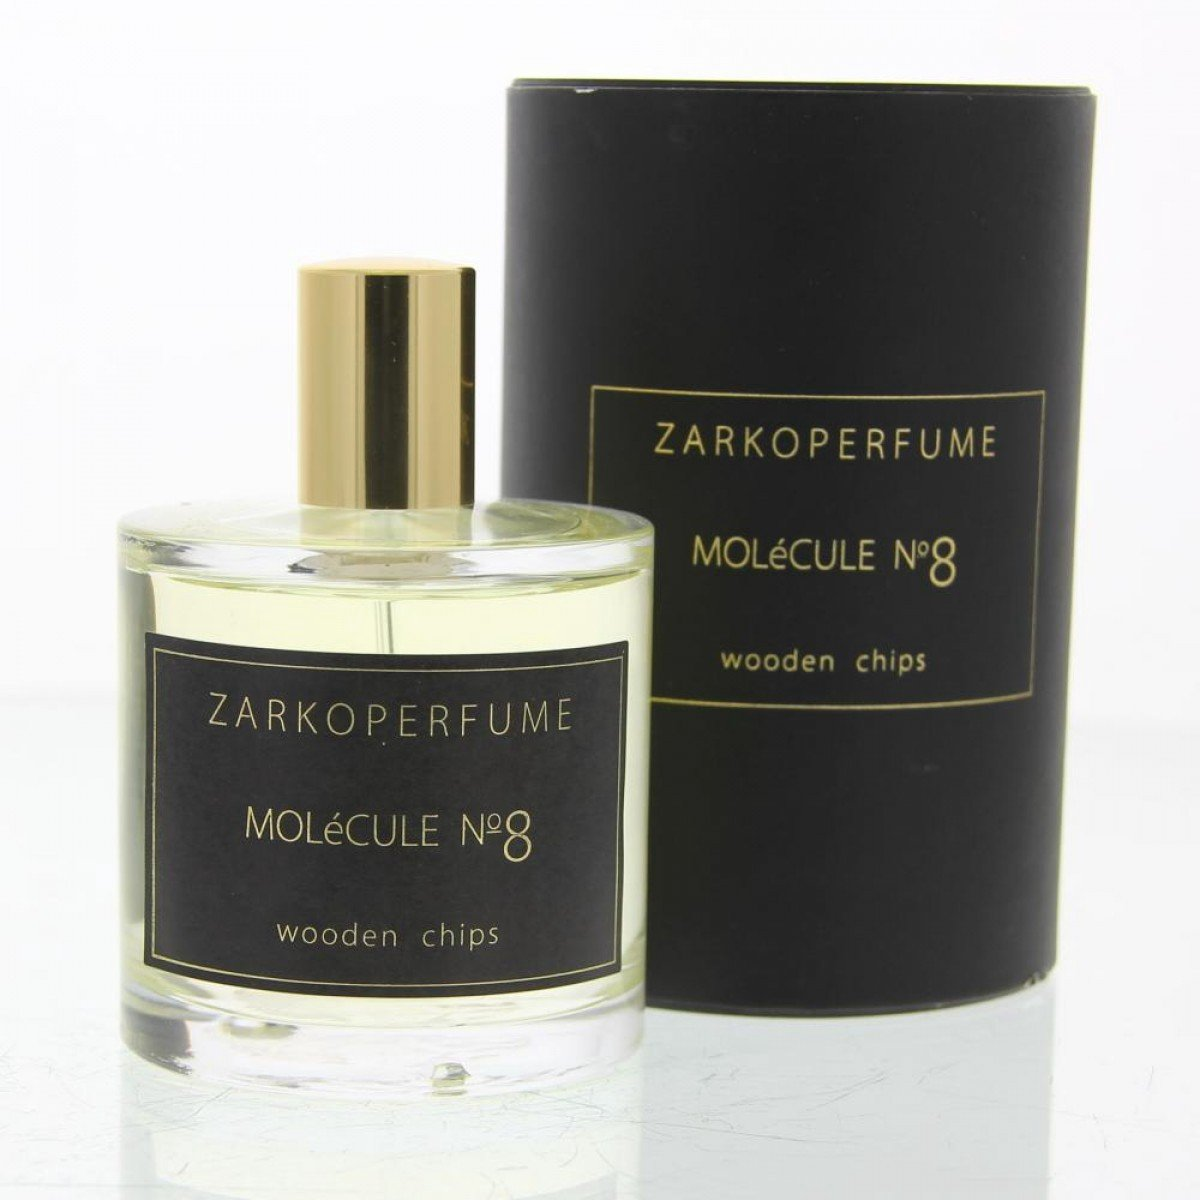 Zarkoperfume Molécule no.8 Wooden chips 100 ml